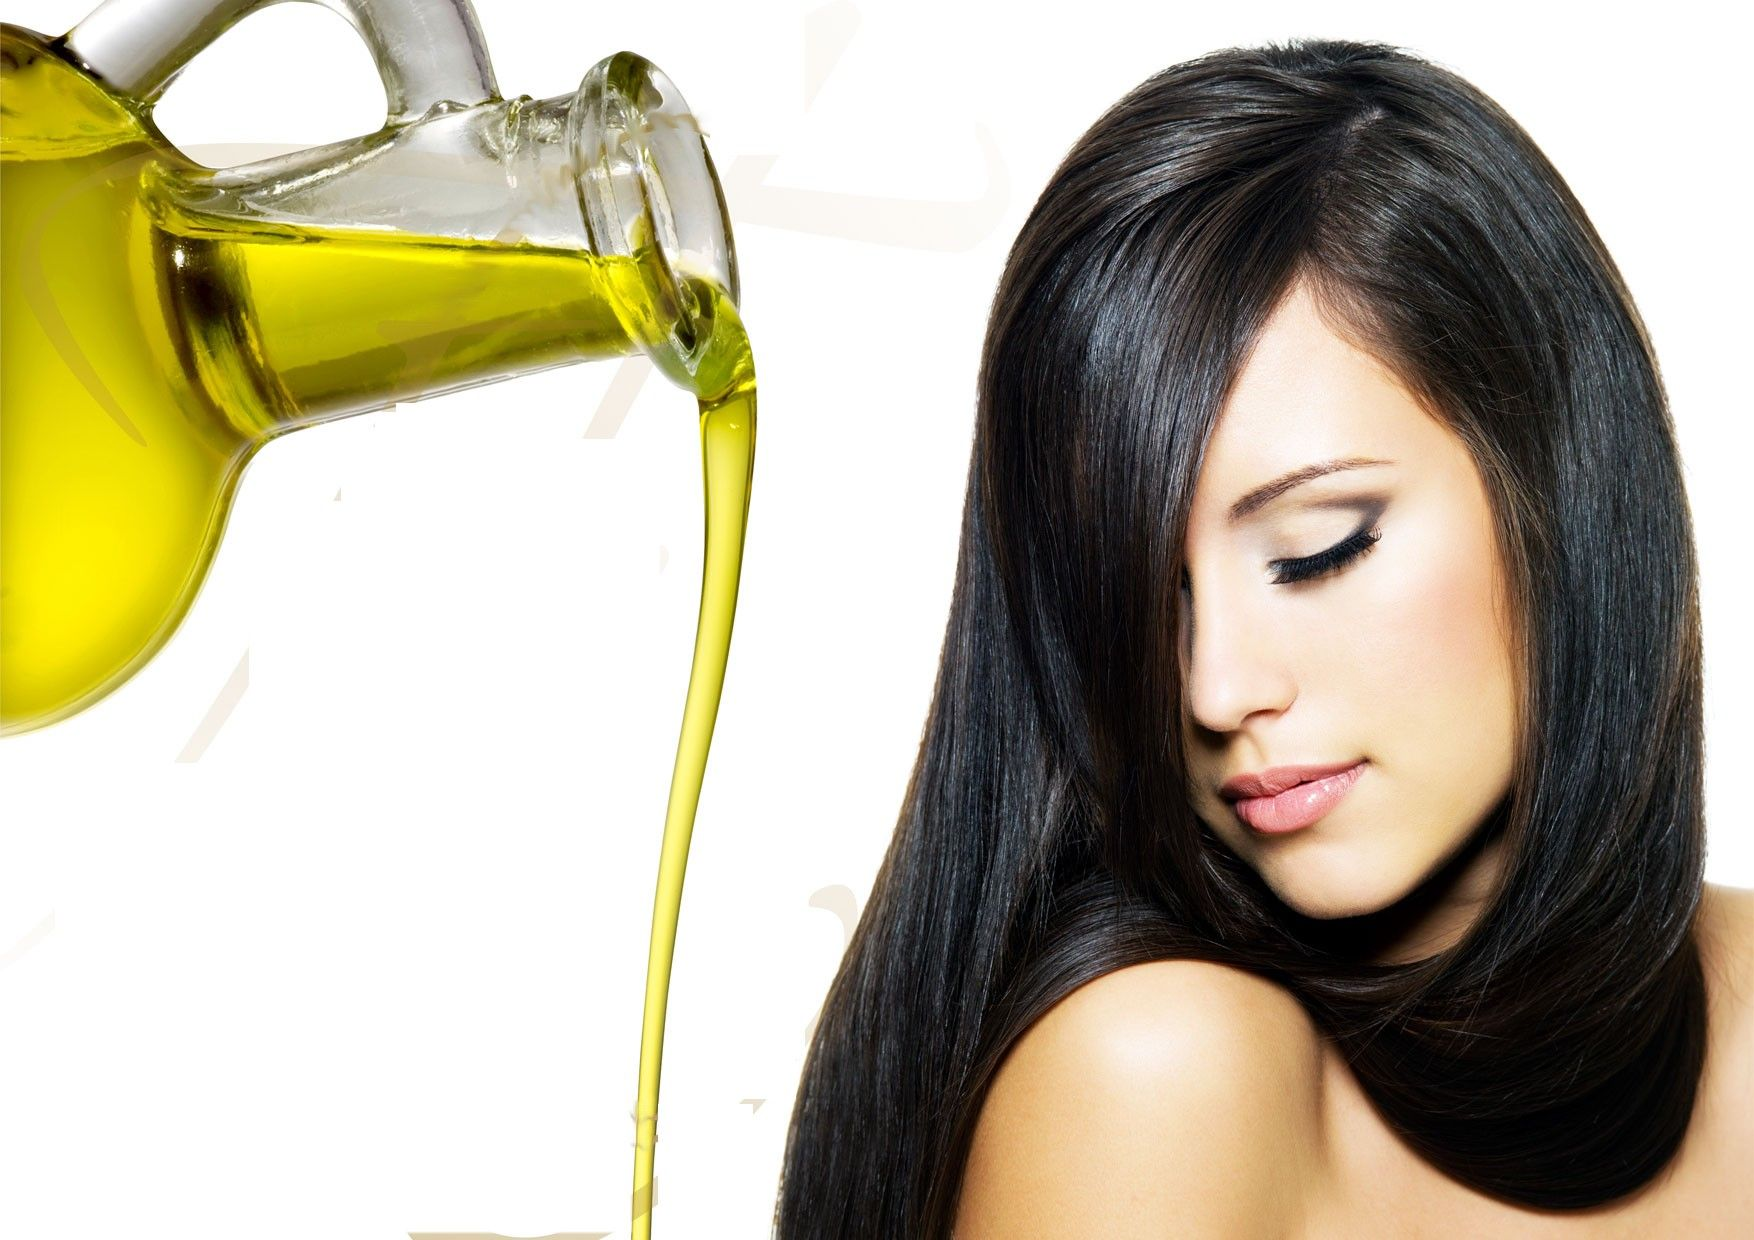 hair oil - Prevent Hair Loss